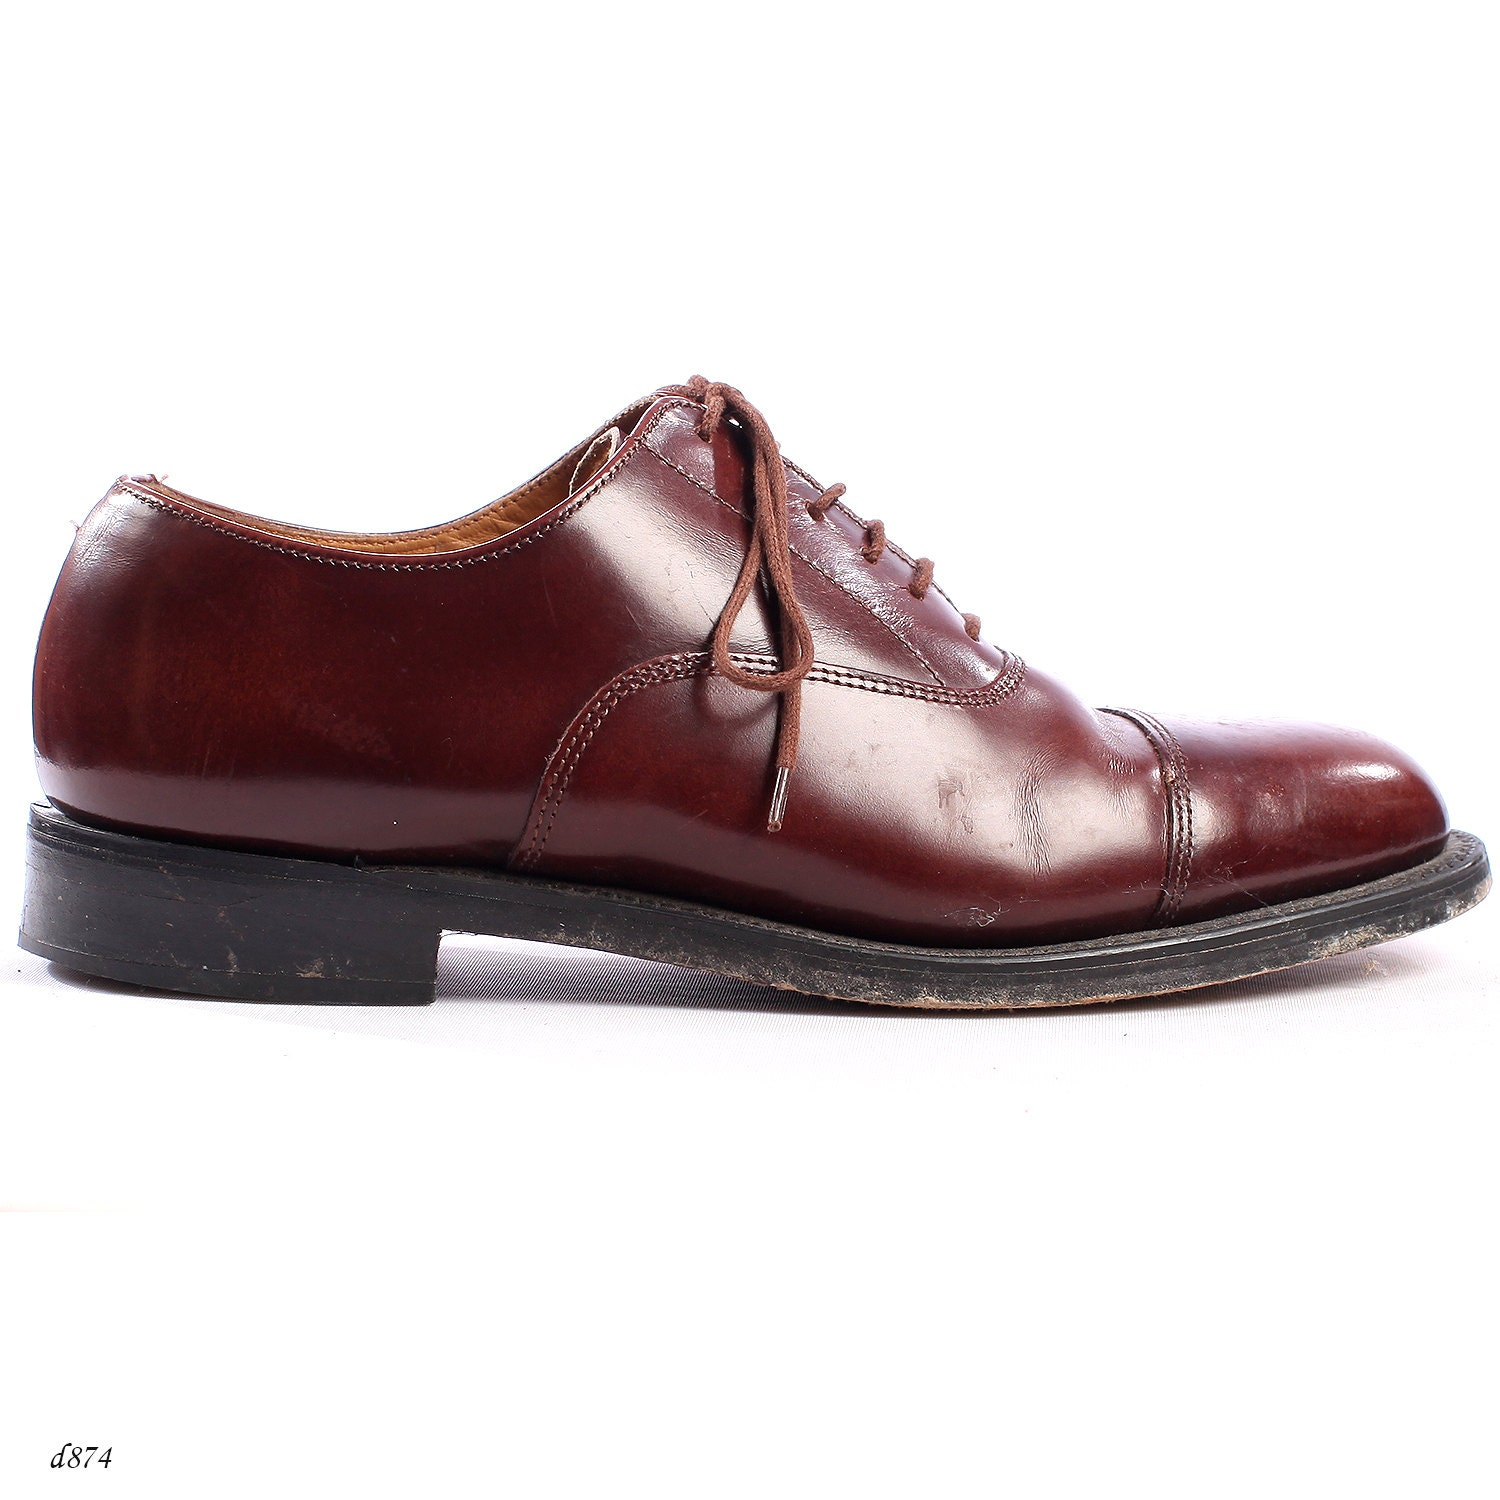 Oxford Shoes . Leather Brogues Oxfords . Vintage Brown Derby Shoes